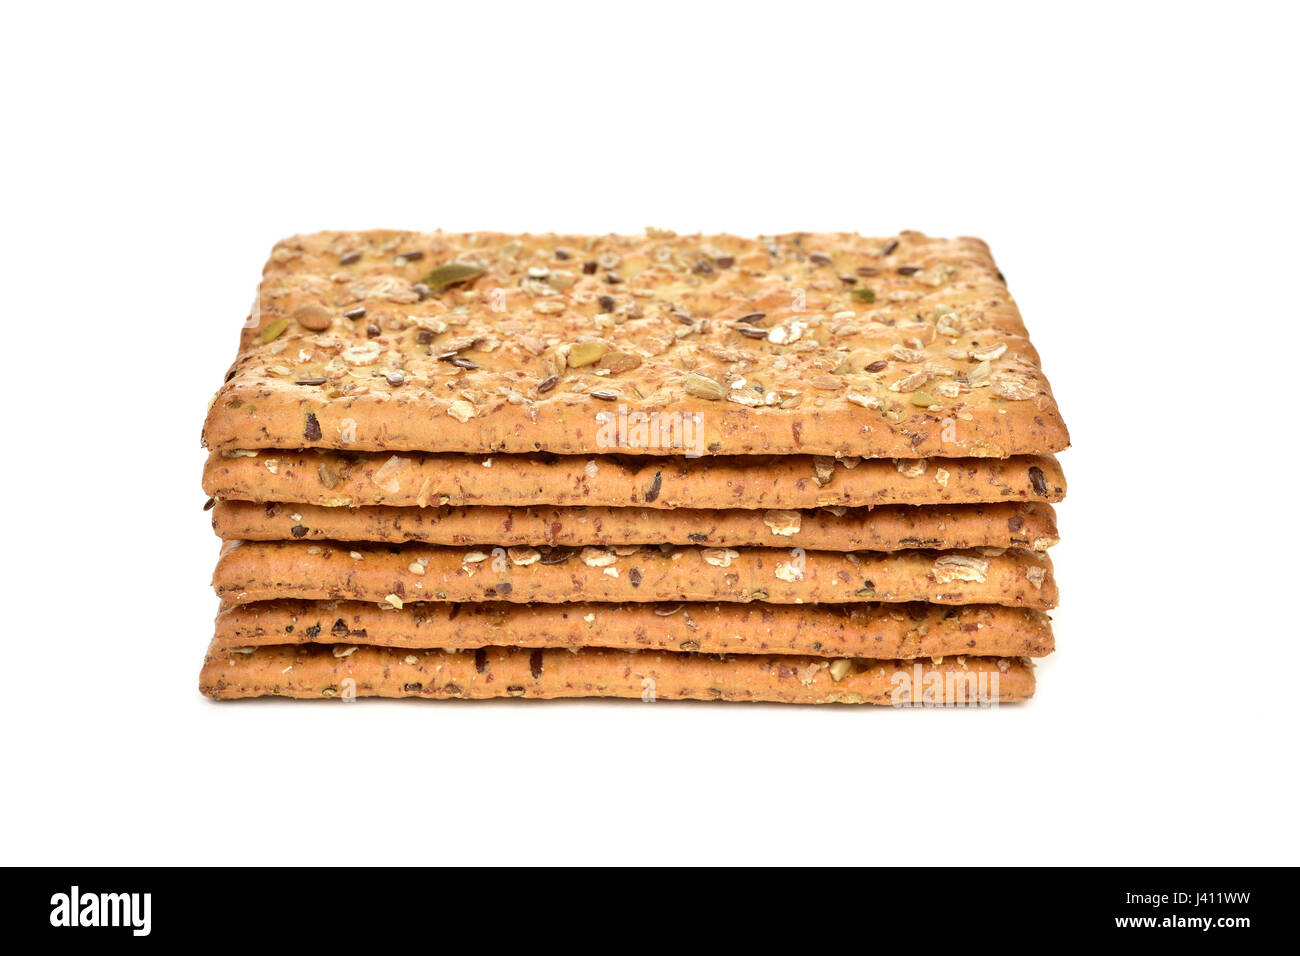 a pile of some appetizing brown crackers topped with different seeds on a white background - Stock Image